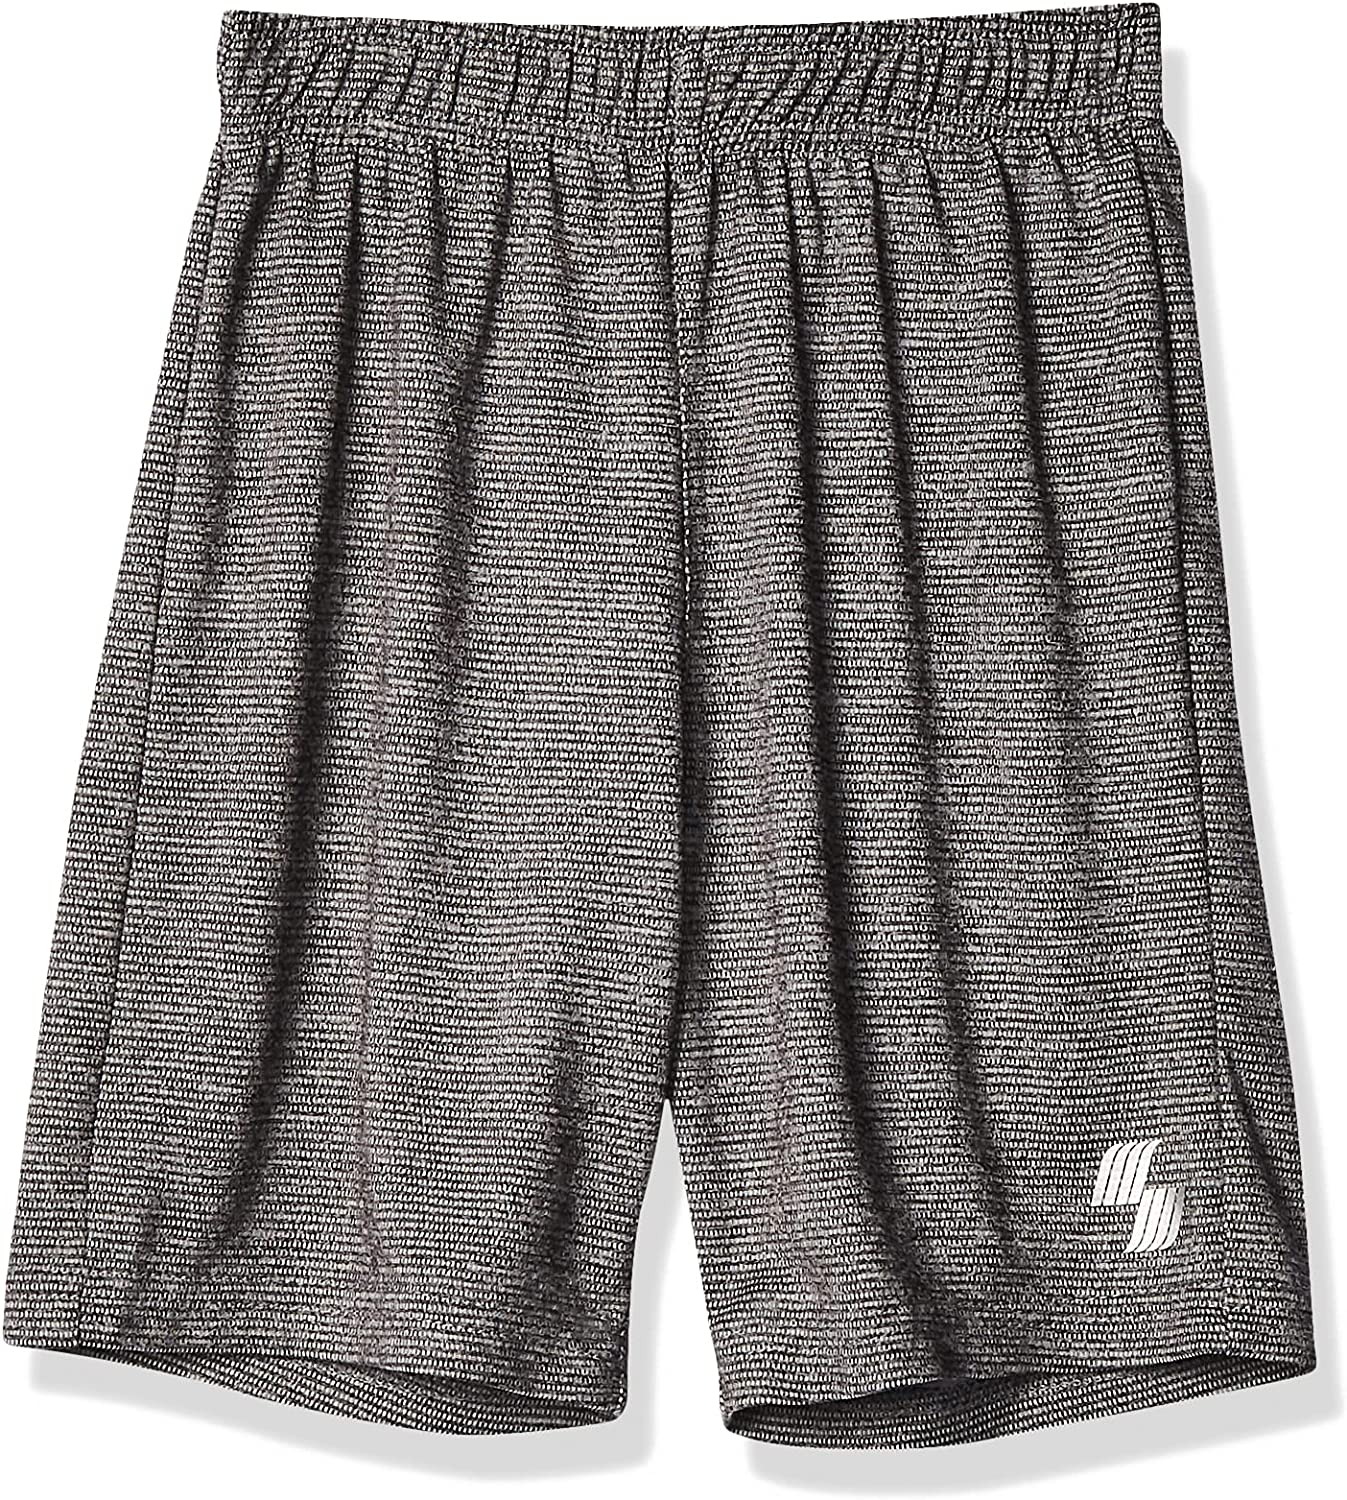 The Children's Place Baby Boys' Active Shorts: Clothing, Shoes & Jewelry